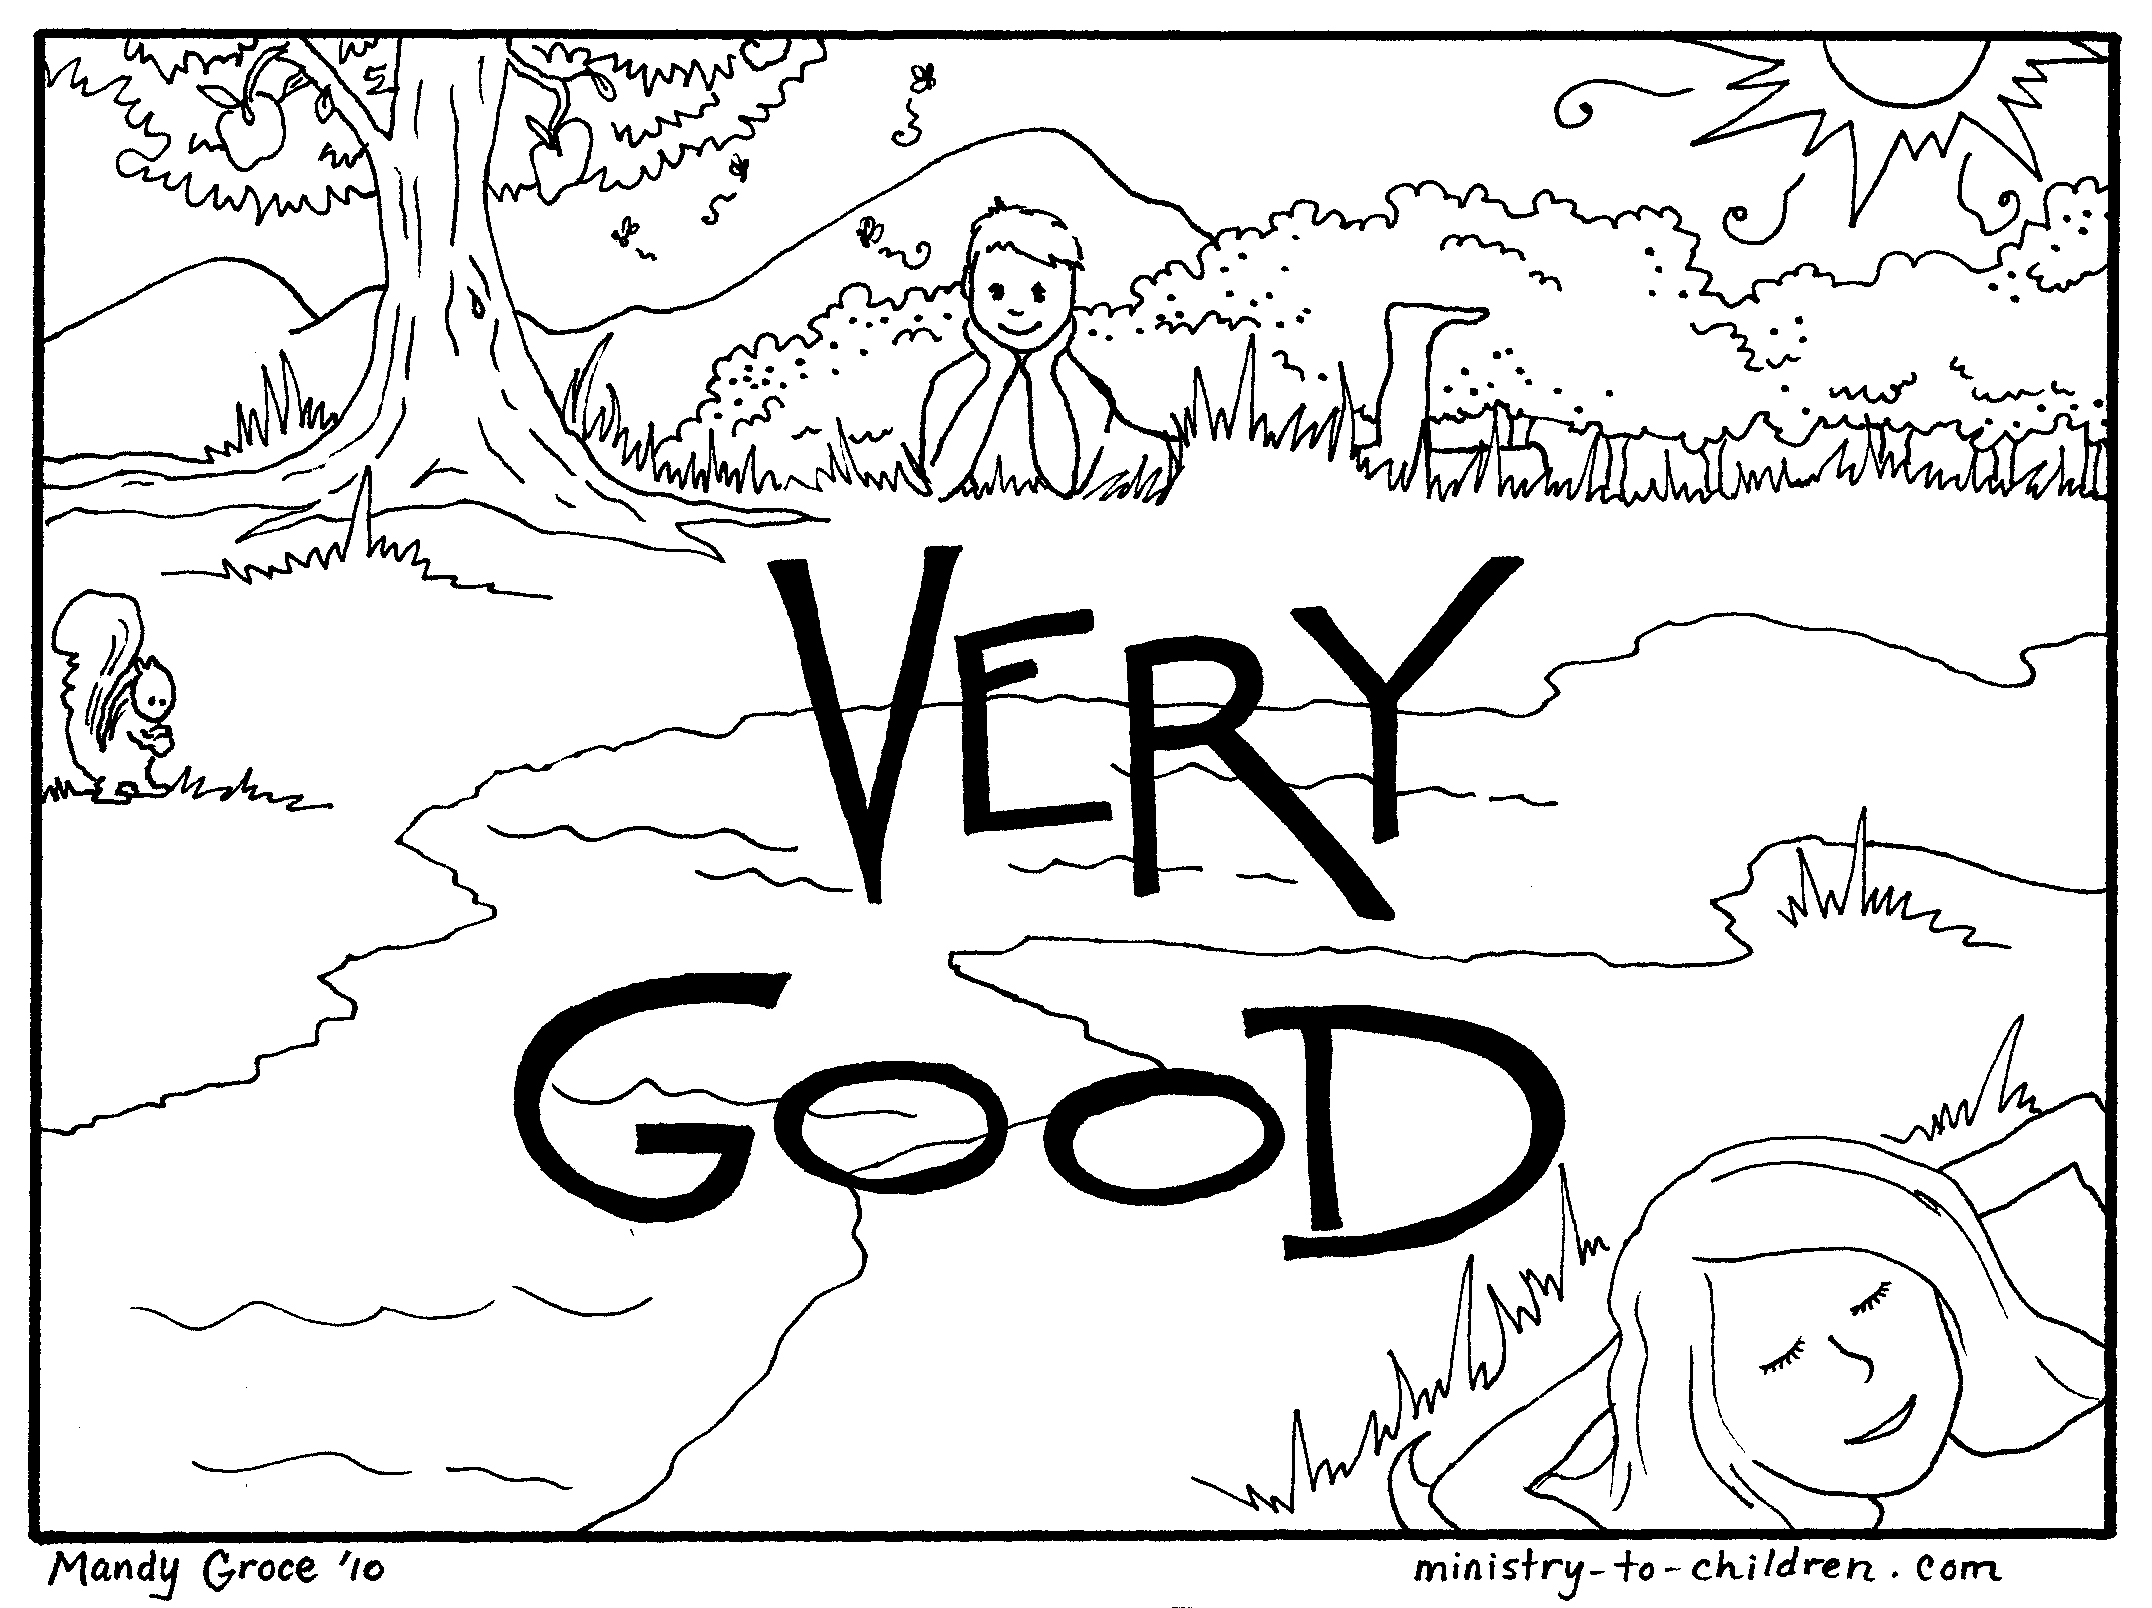 days of creation coloring pages 7 days of creation coloring pages - Days Of Creation Coloring Pages